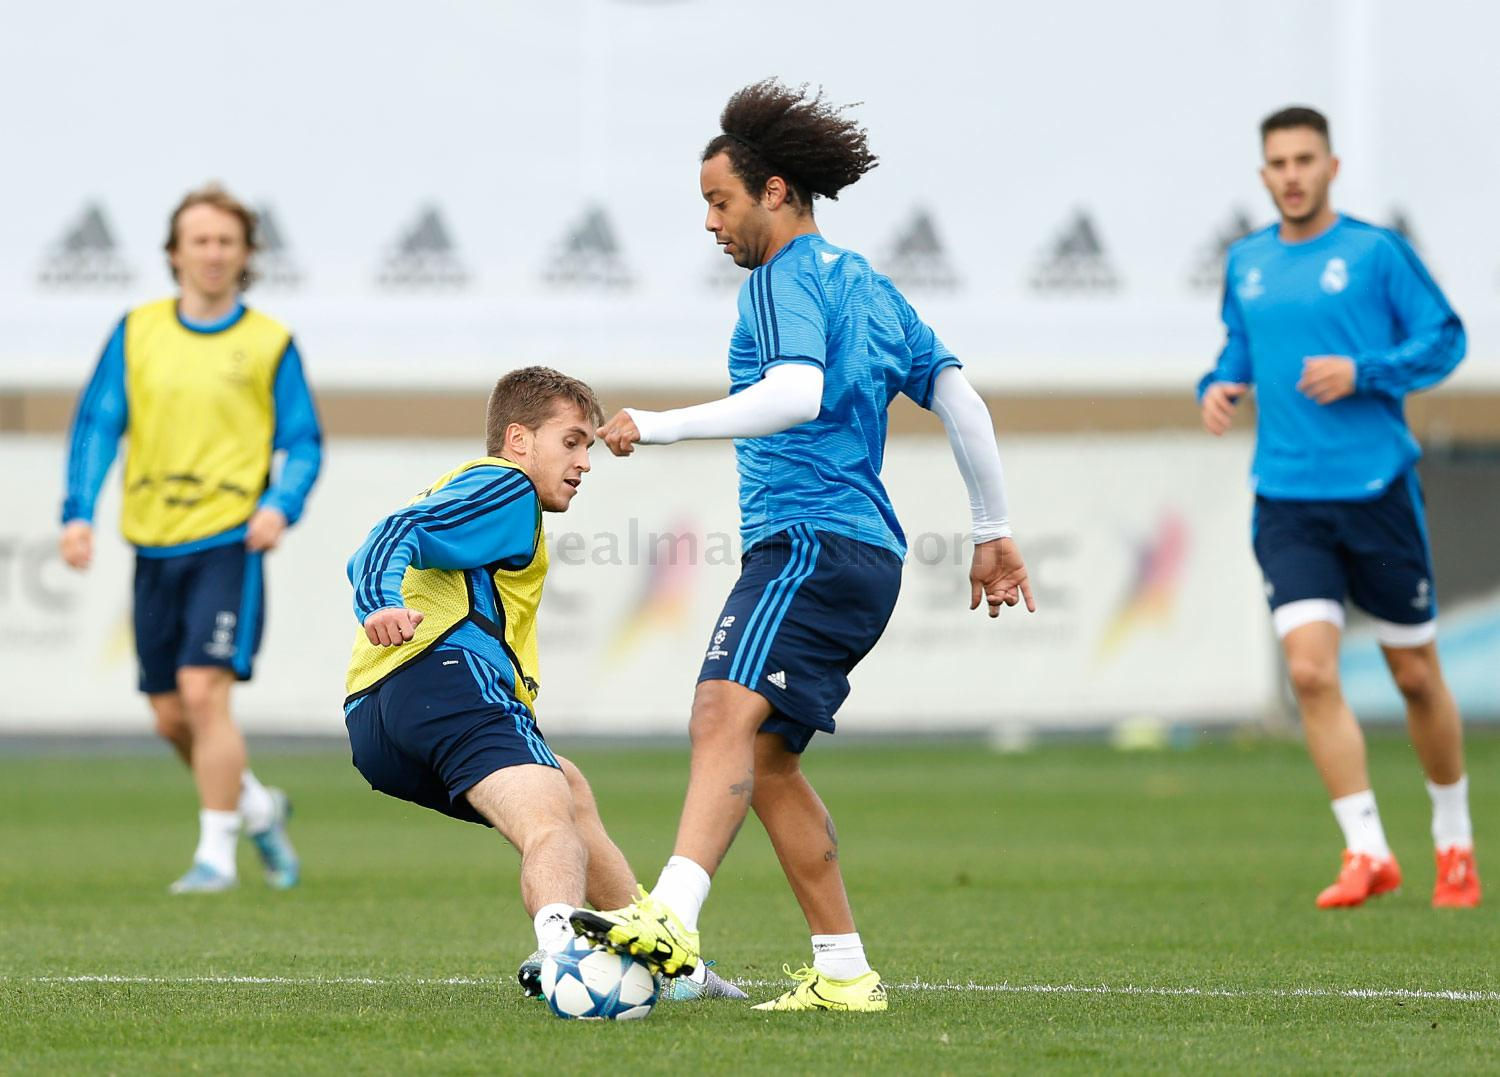 Real Madrid - Entrenamiento del Real Madrid - 02-11-2015